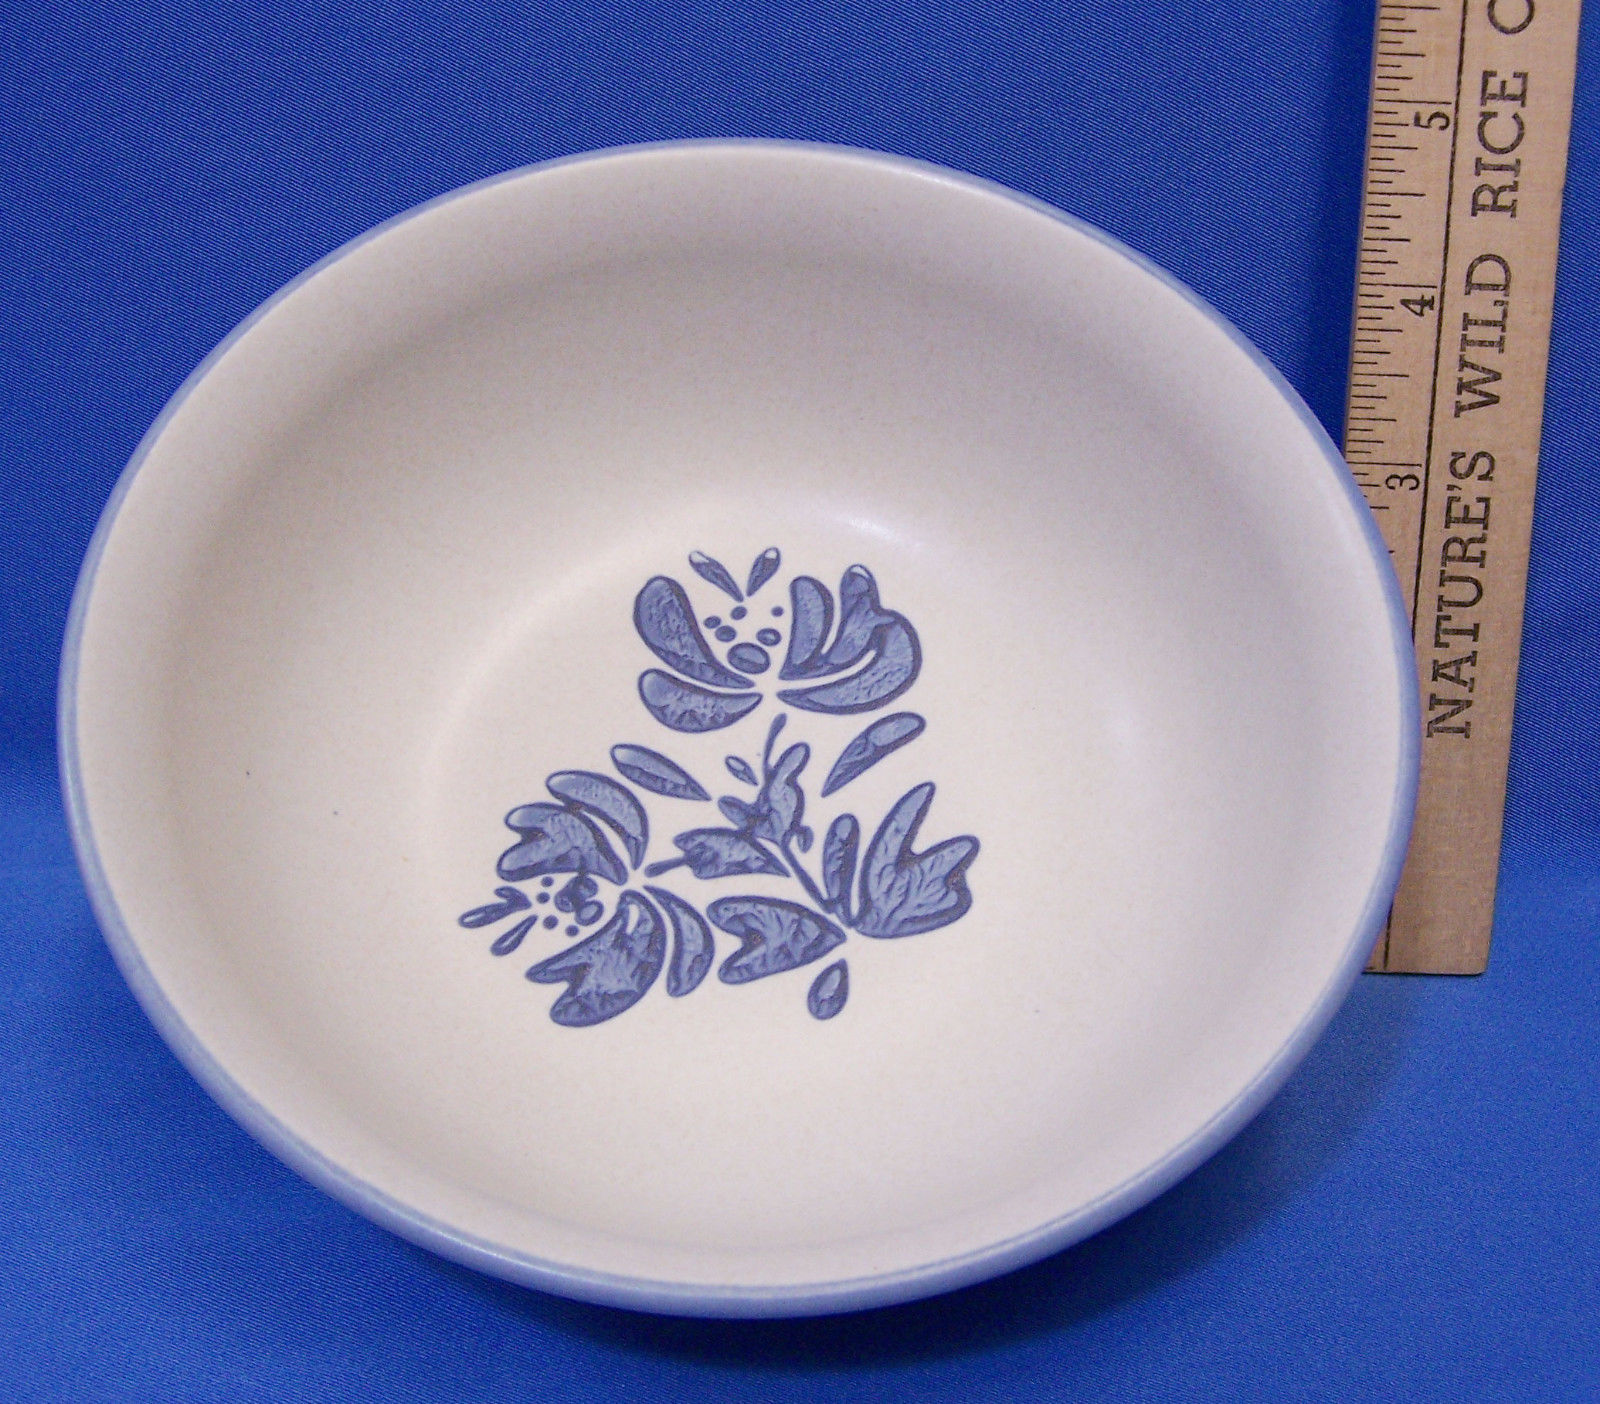 "Primary image for Pfaltzgraff Yorktowne Cereal Bowl Blue Flower Pattern 6"" D"